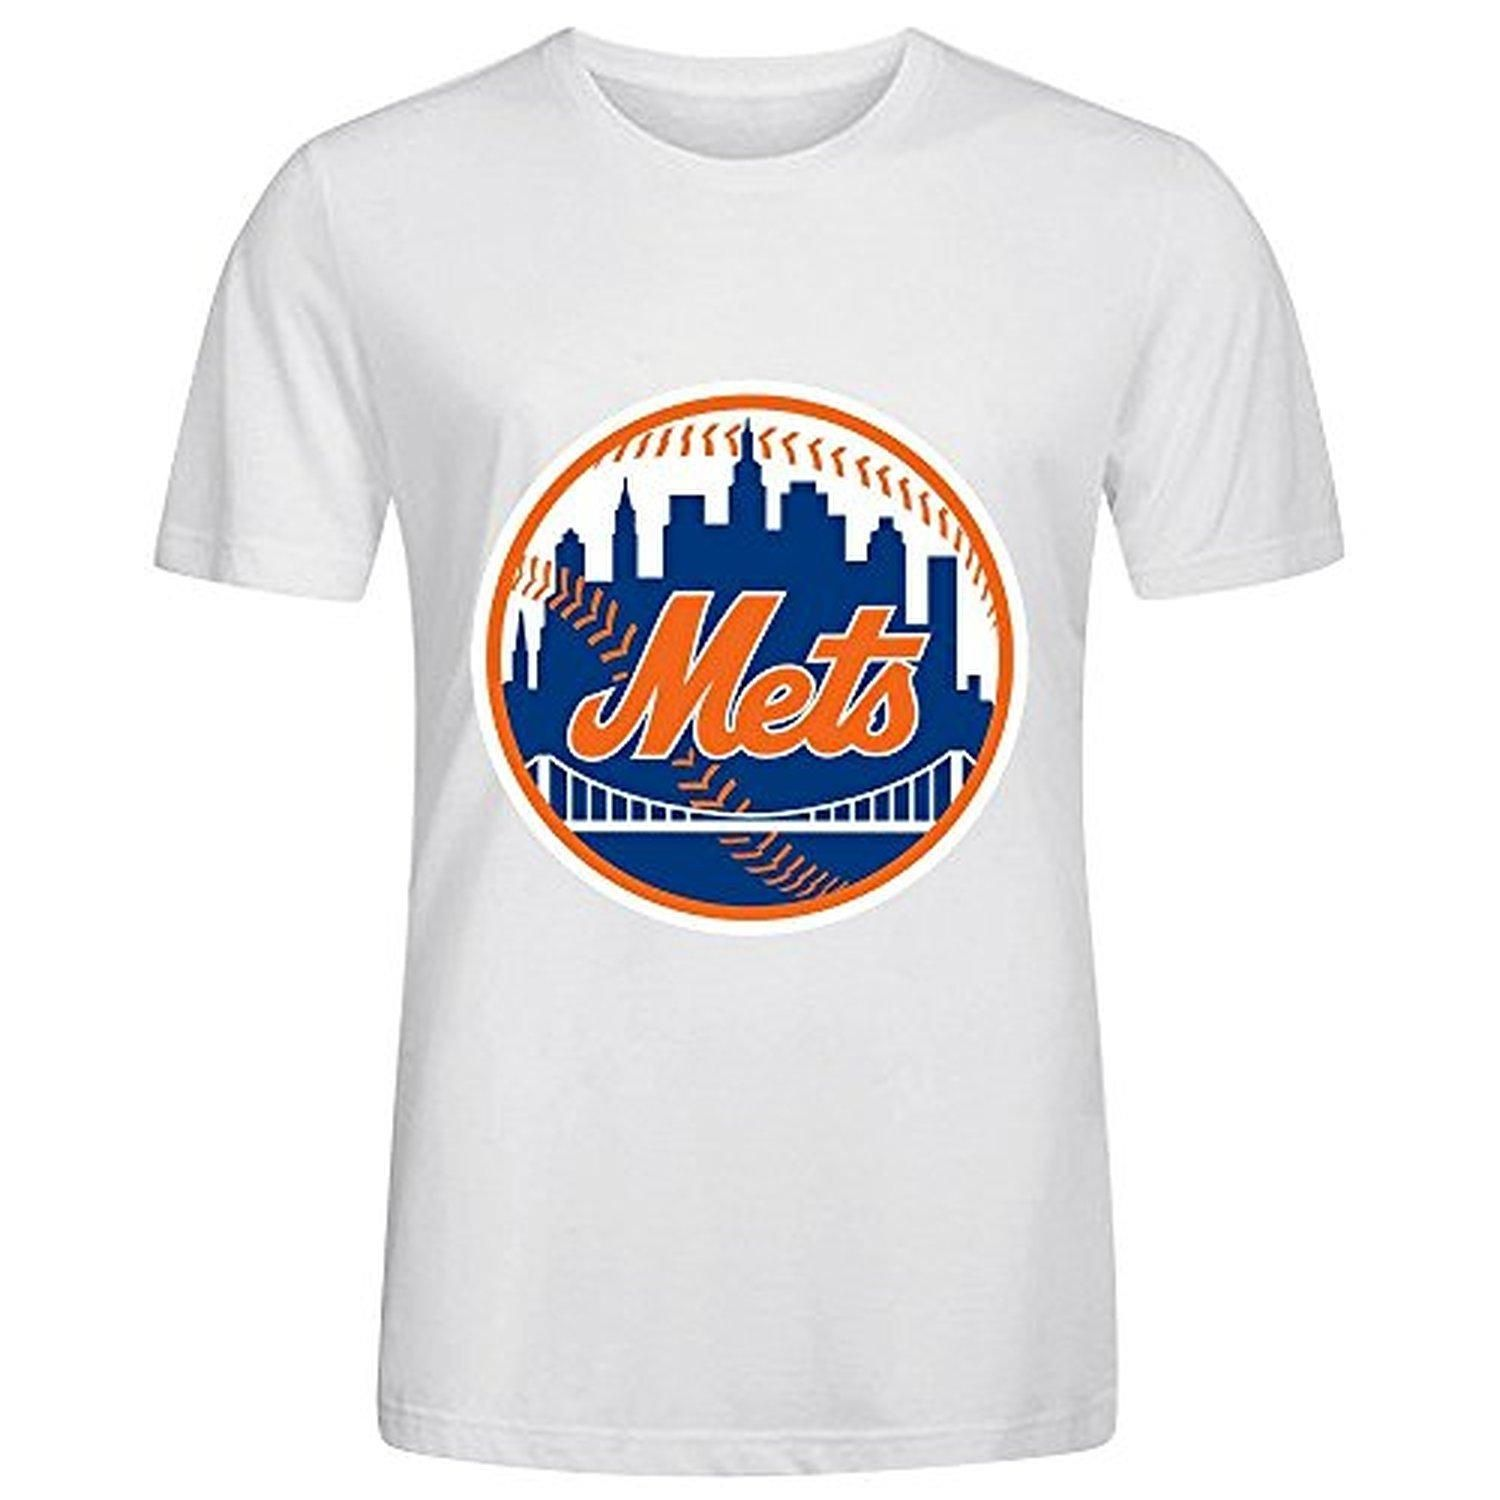 ec657a9c MLB New York Mets Team Logo Crew Neck T Shirts For Men White - Brought to  you by Avarsha.com